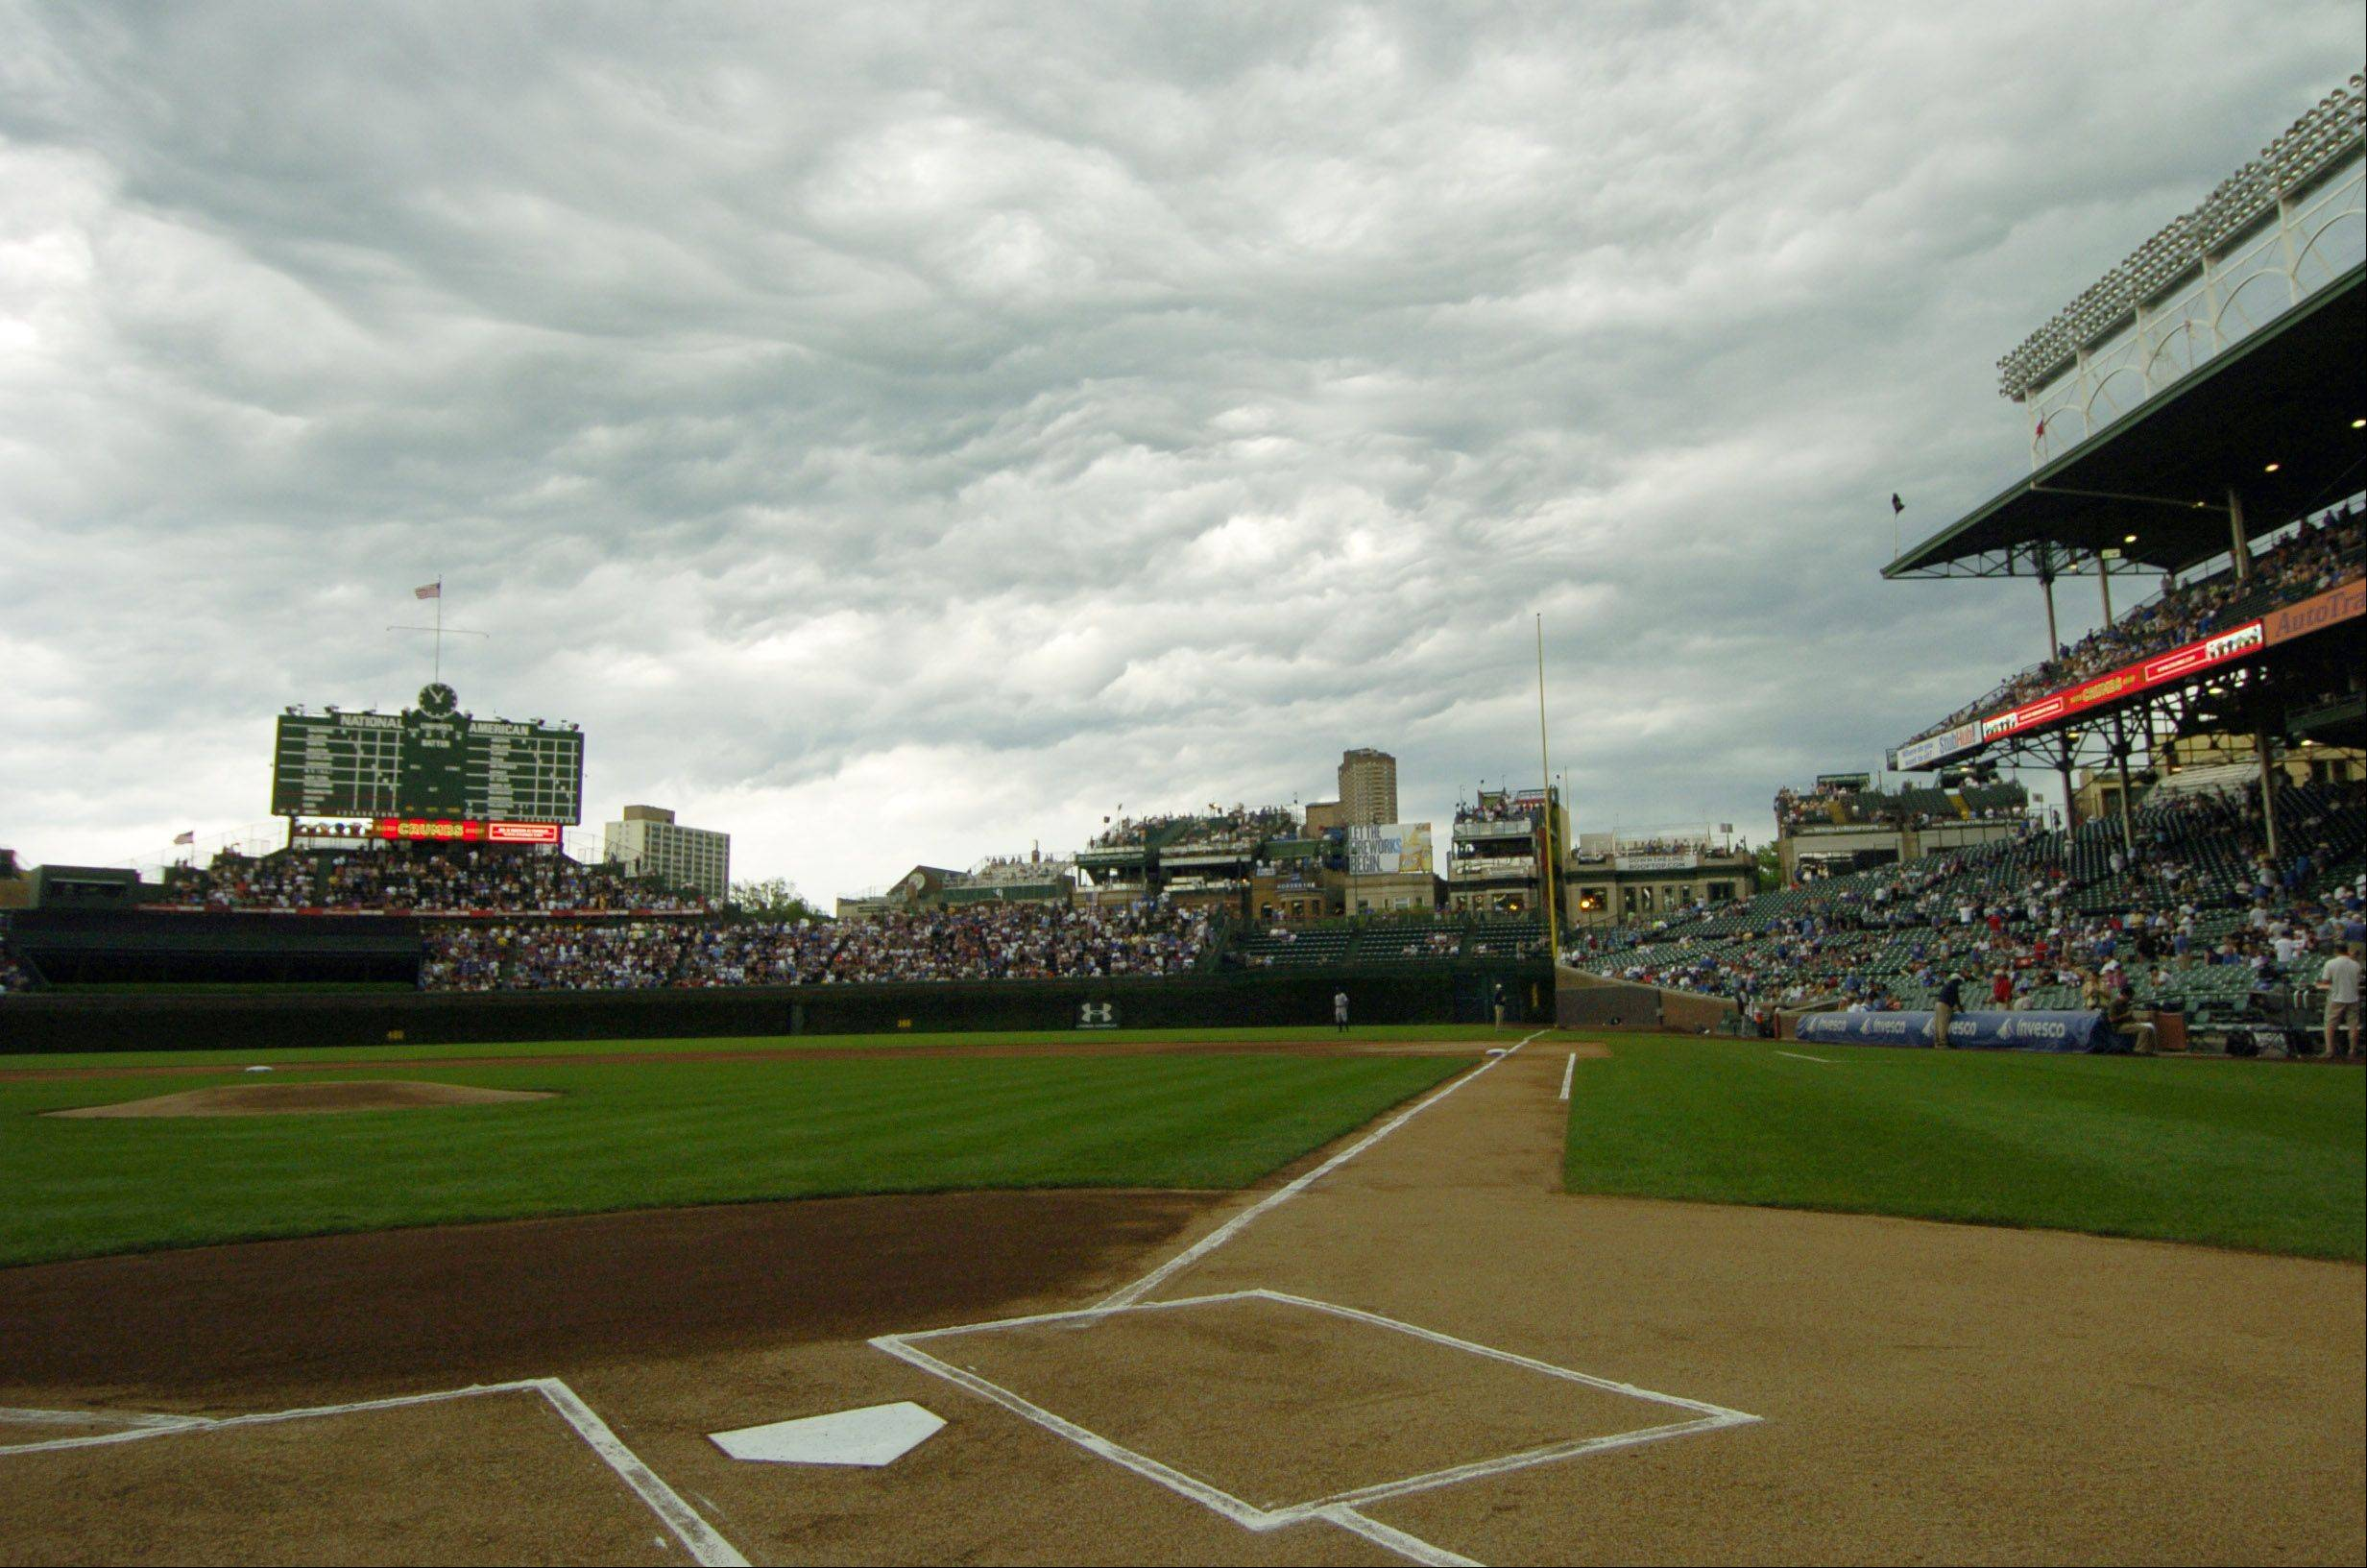 An ominous sky and strong winds pass over Wrigley Field before game time Friday.